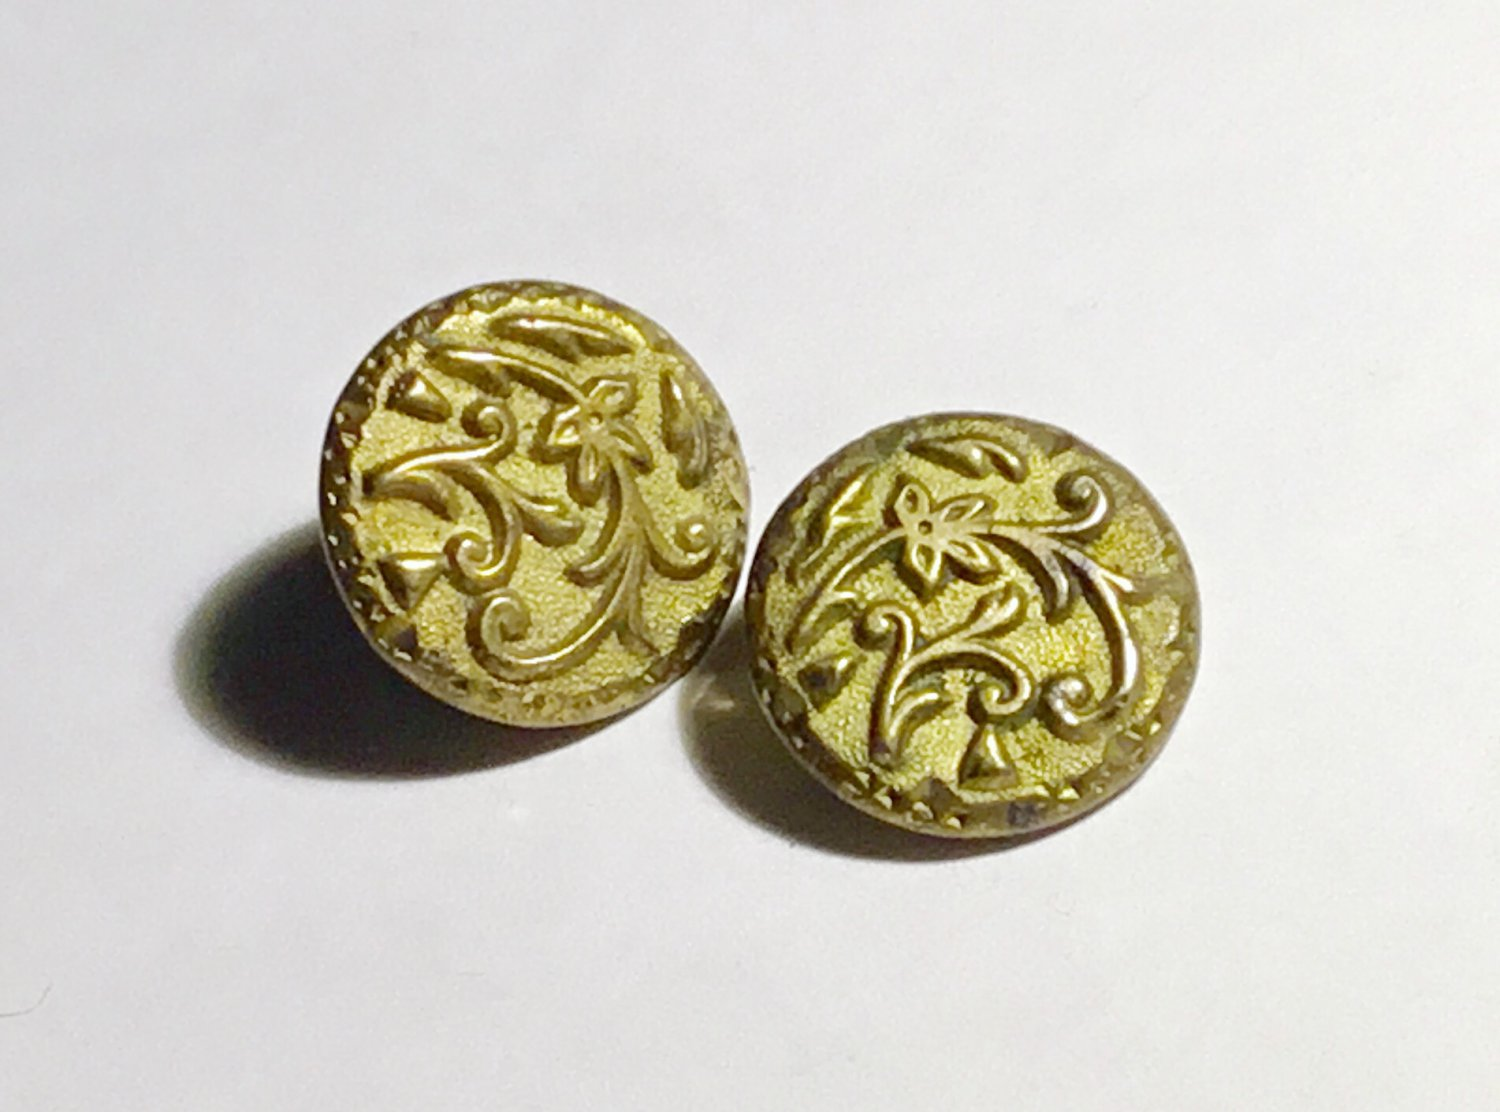 Pair of Antique Victorian Brass Leaf Tracery Buttons - Free USA Shipping